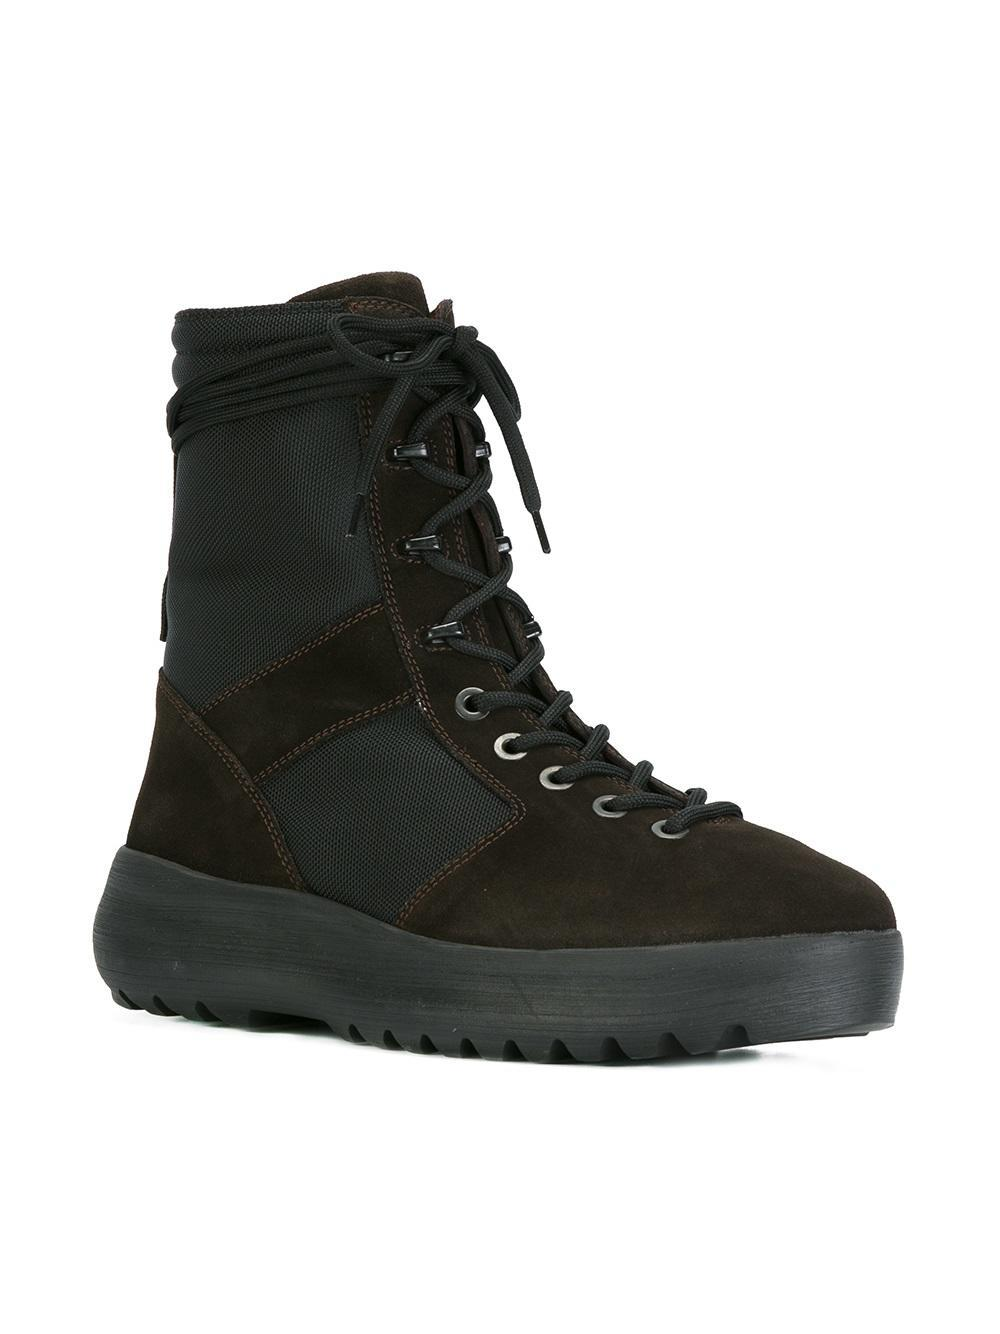 Yeezy Leather Season 3 Military Boots In Brown For Men Lyst